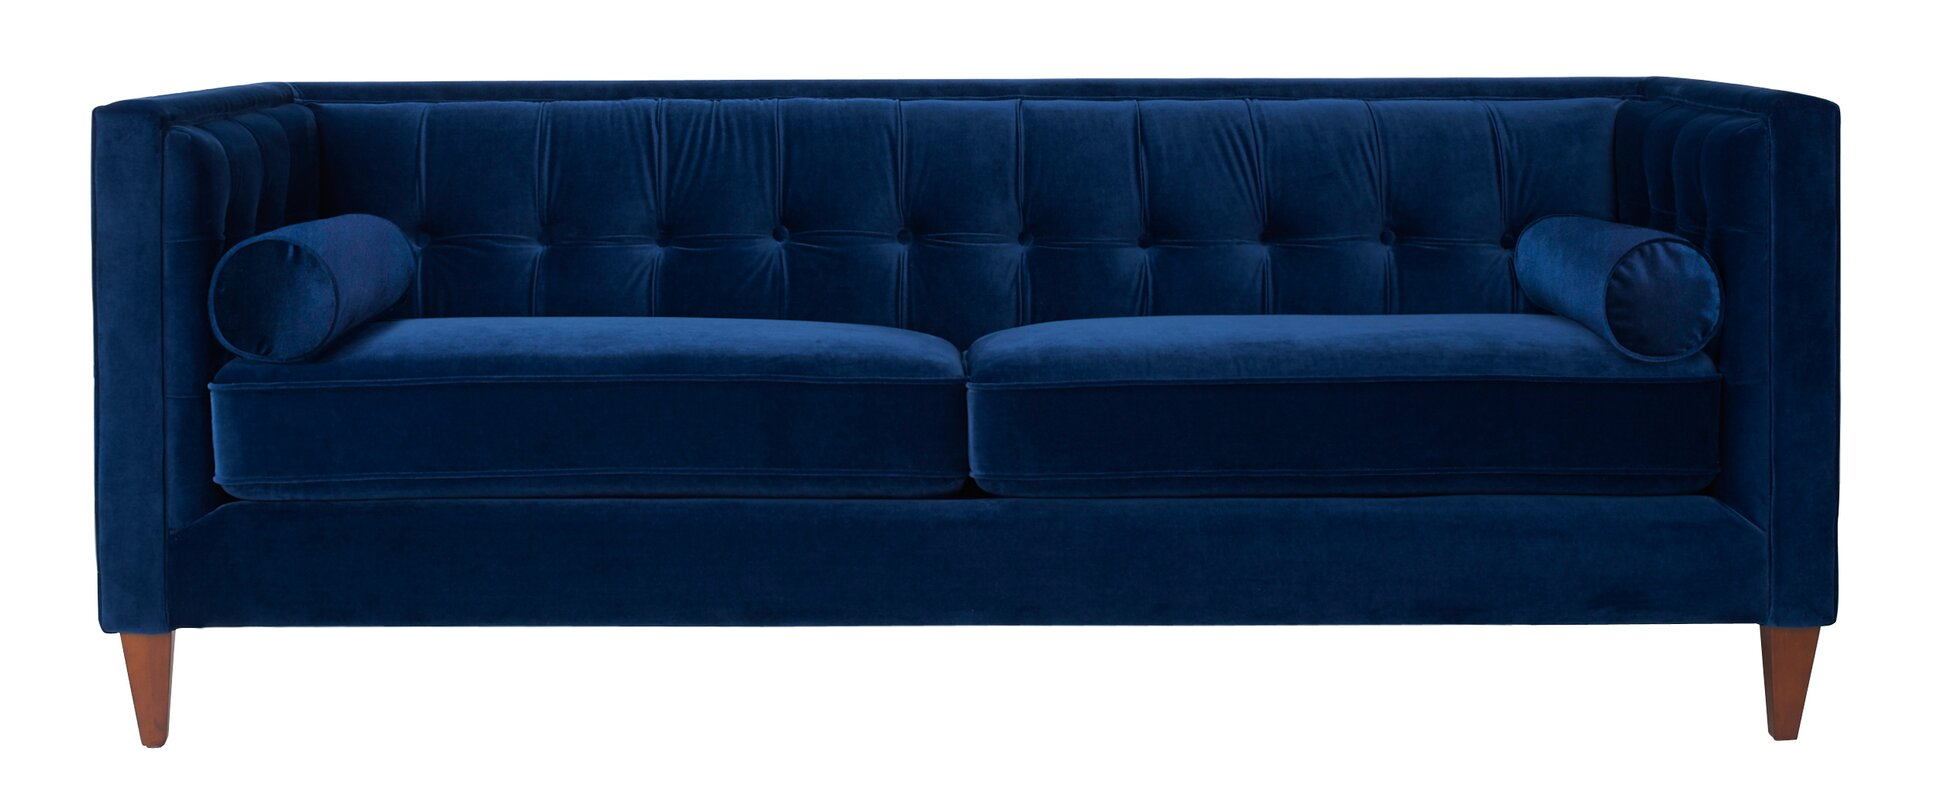 "Velvet 84"" Sofa - Shop Drew's Honeymoon House {Jonathan's Guest Suite} #sexysofa #bluevelvet #PropertyBrothers"